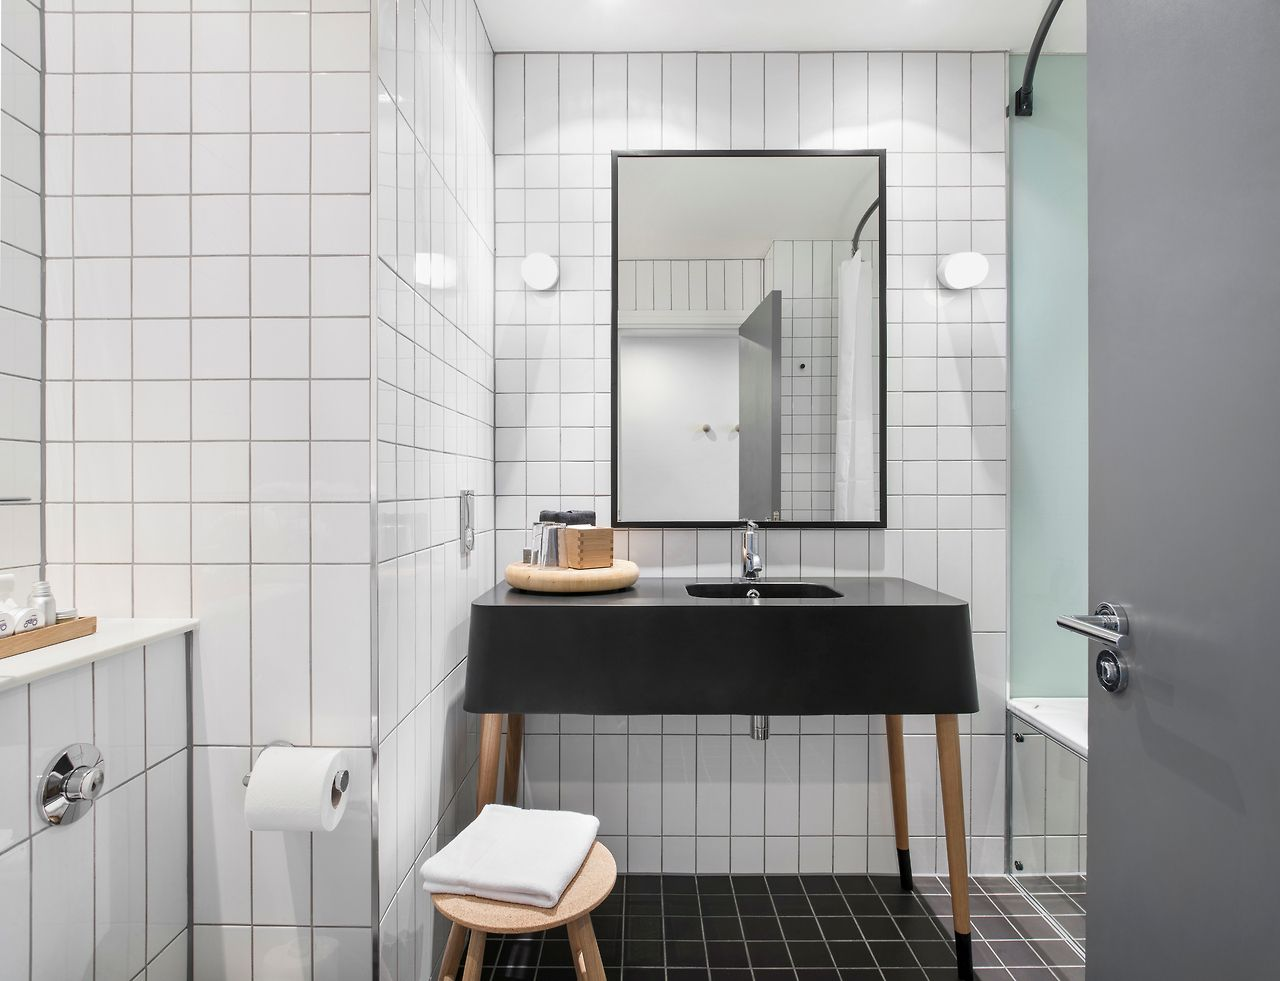 knee room sink. tilt mirror. dezeen: ace hotel shoreditch